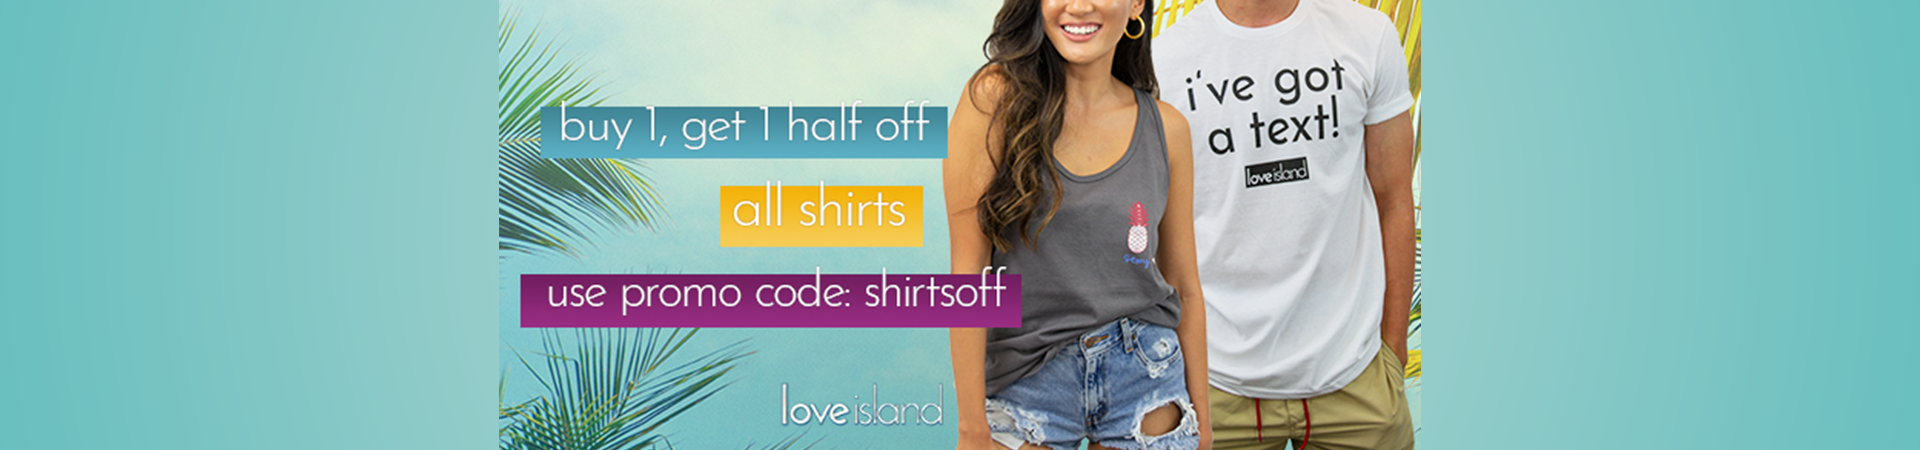 BOGO Half Off With Promo Code shirtsoff